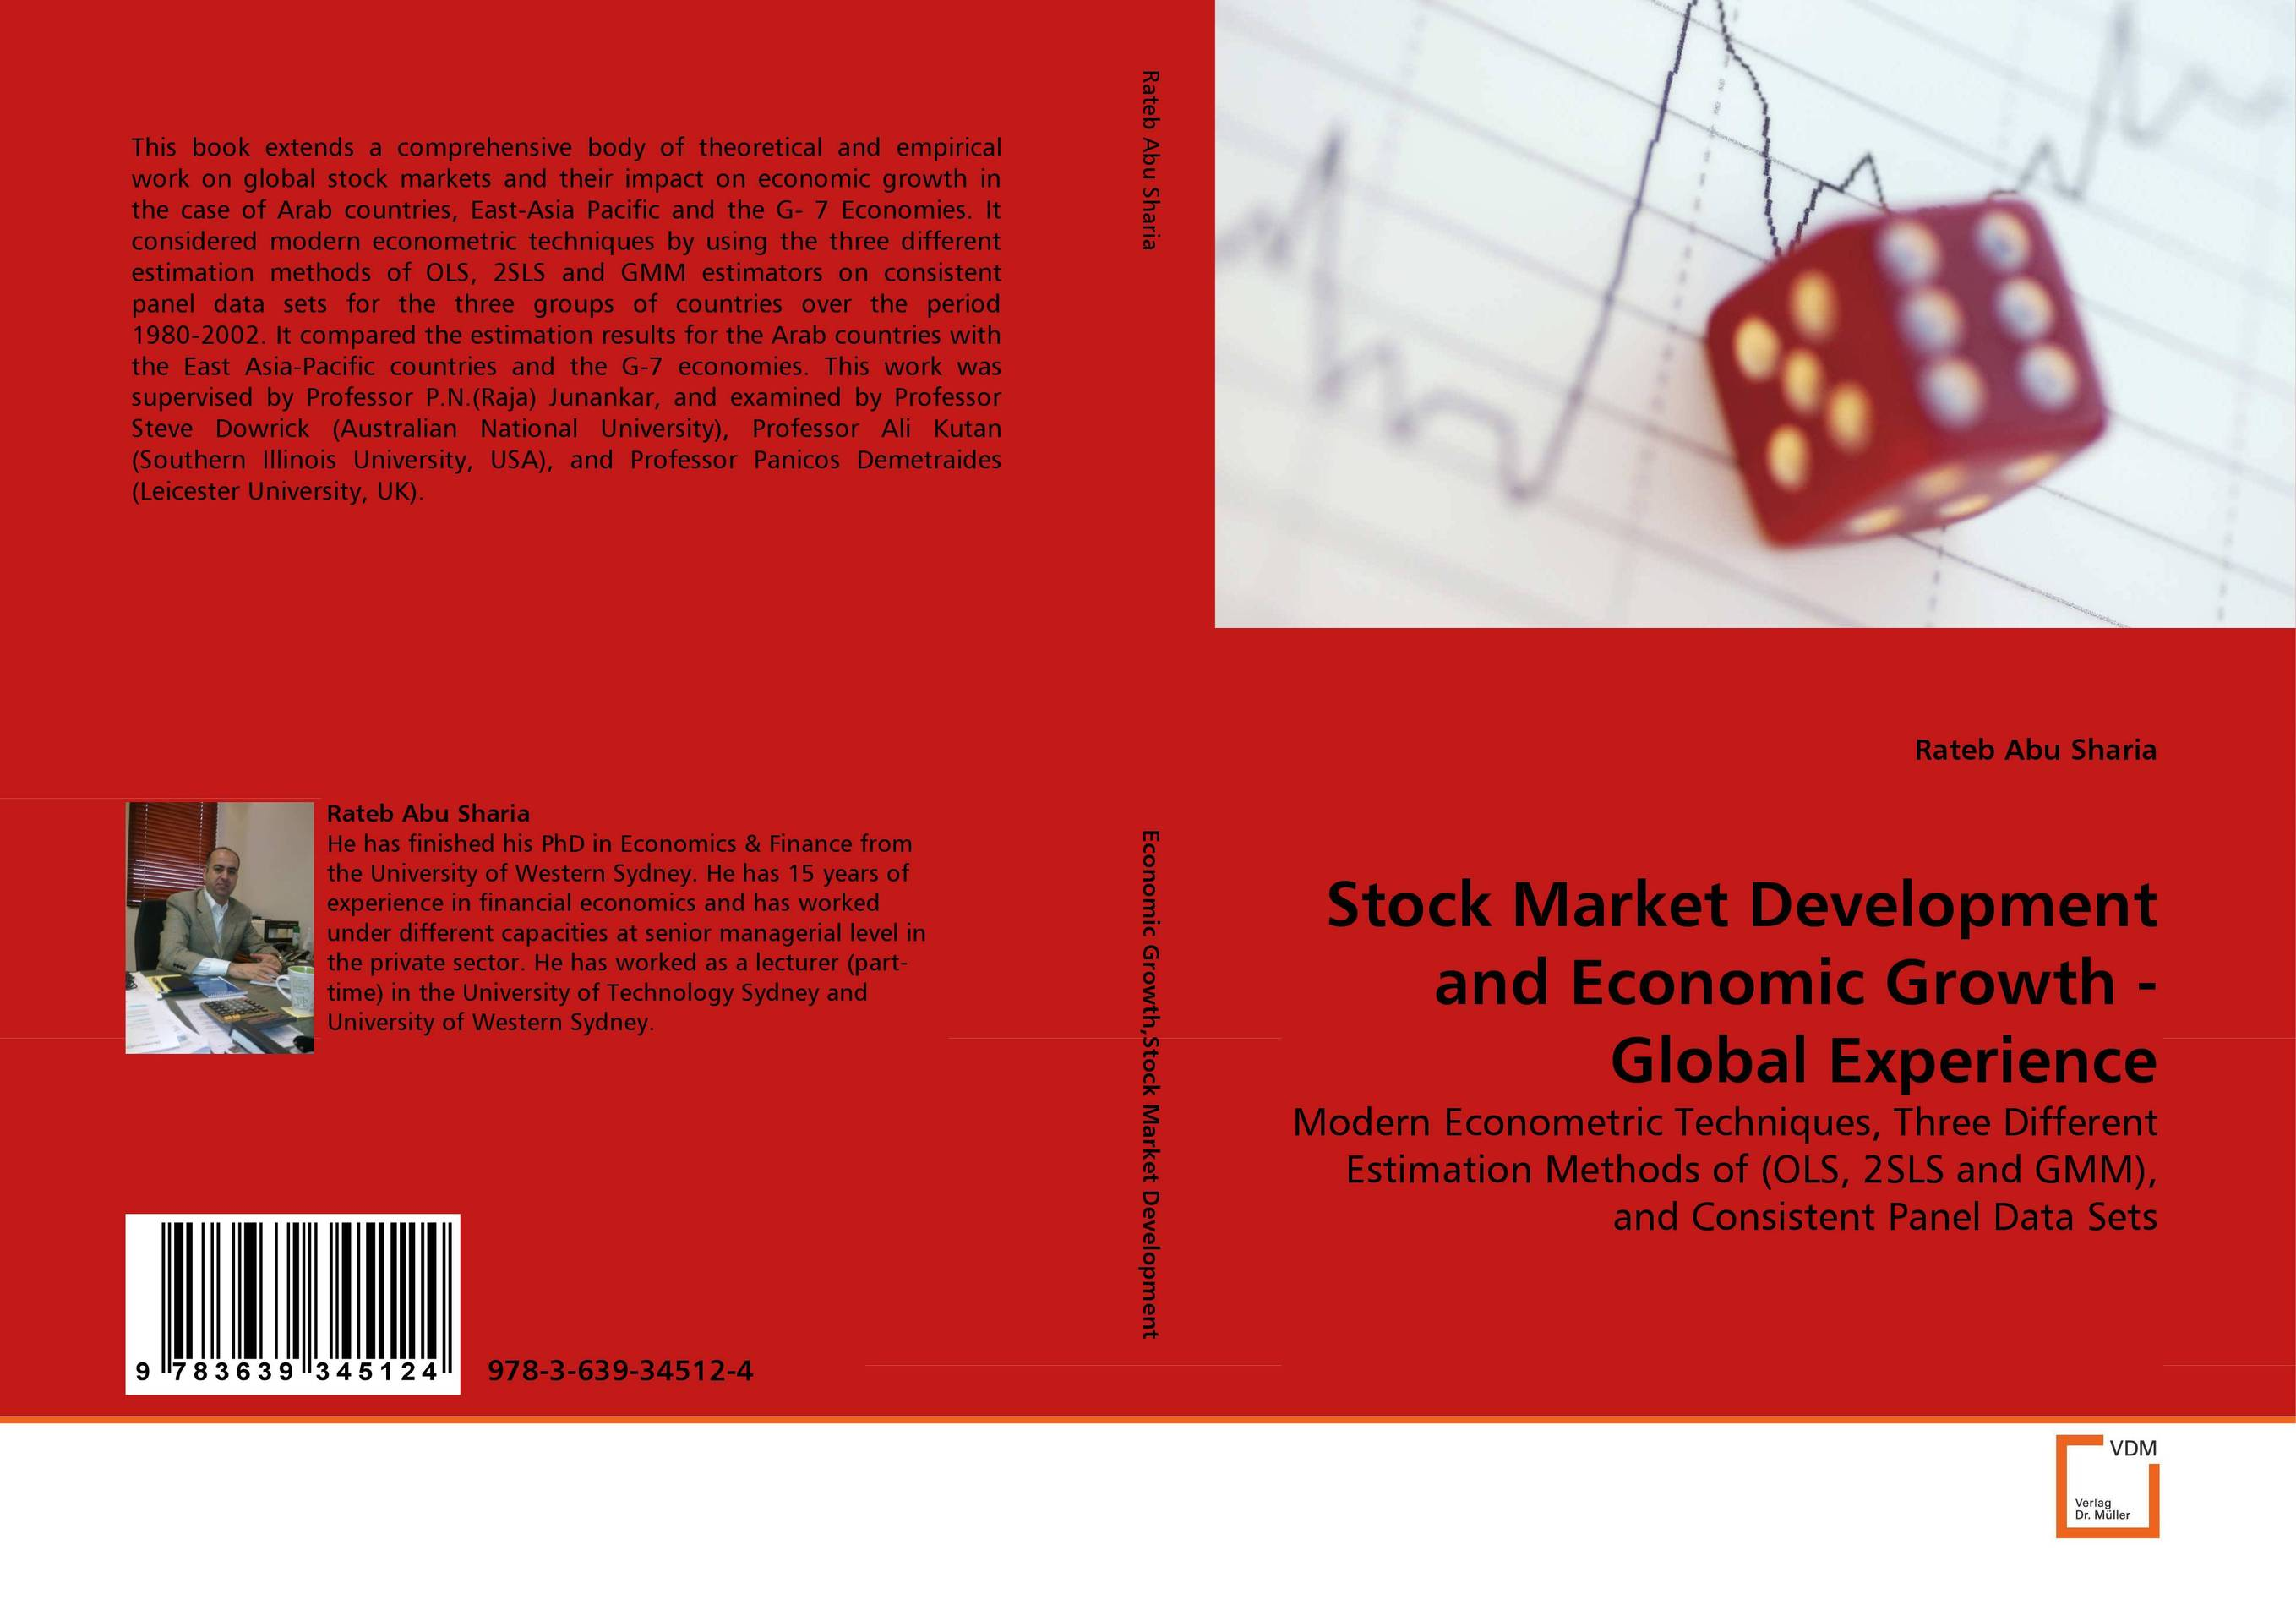 Stock Market Development and Economic Growth - Global Experience impact of stock market performance indices on economic growth